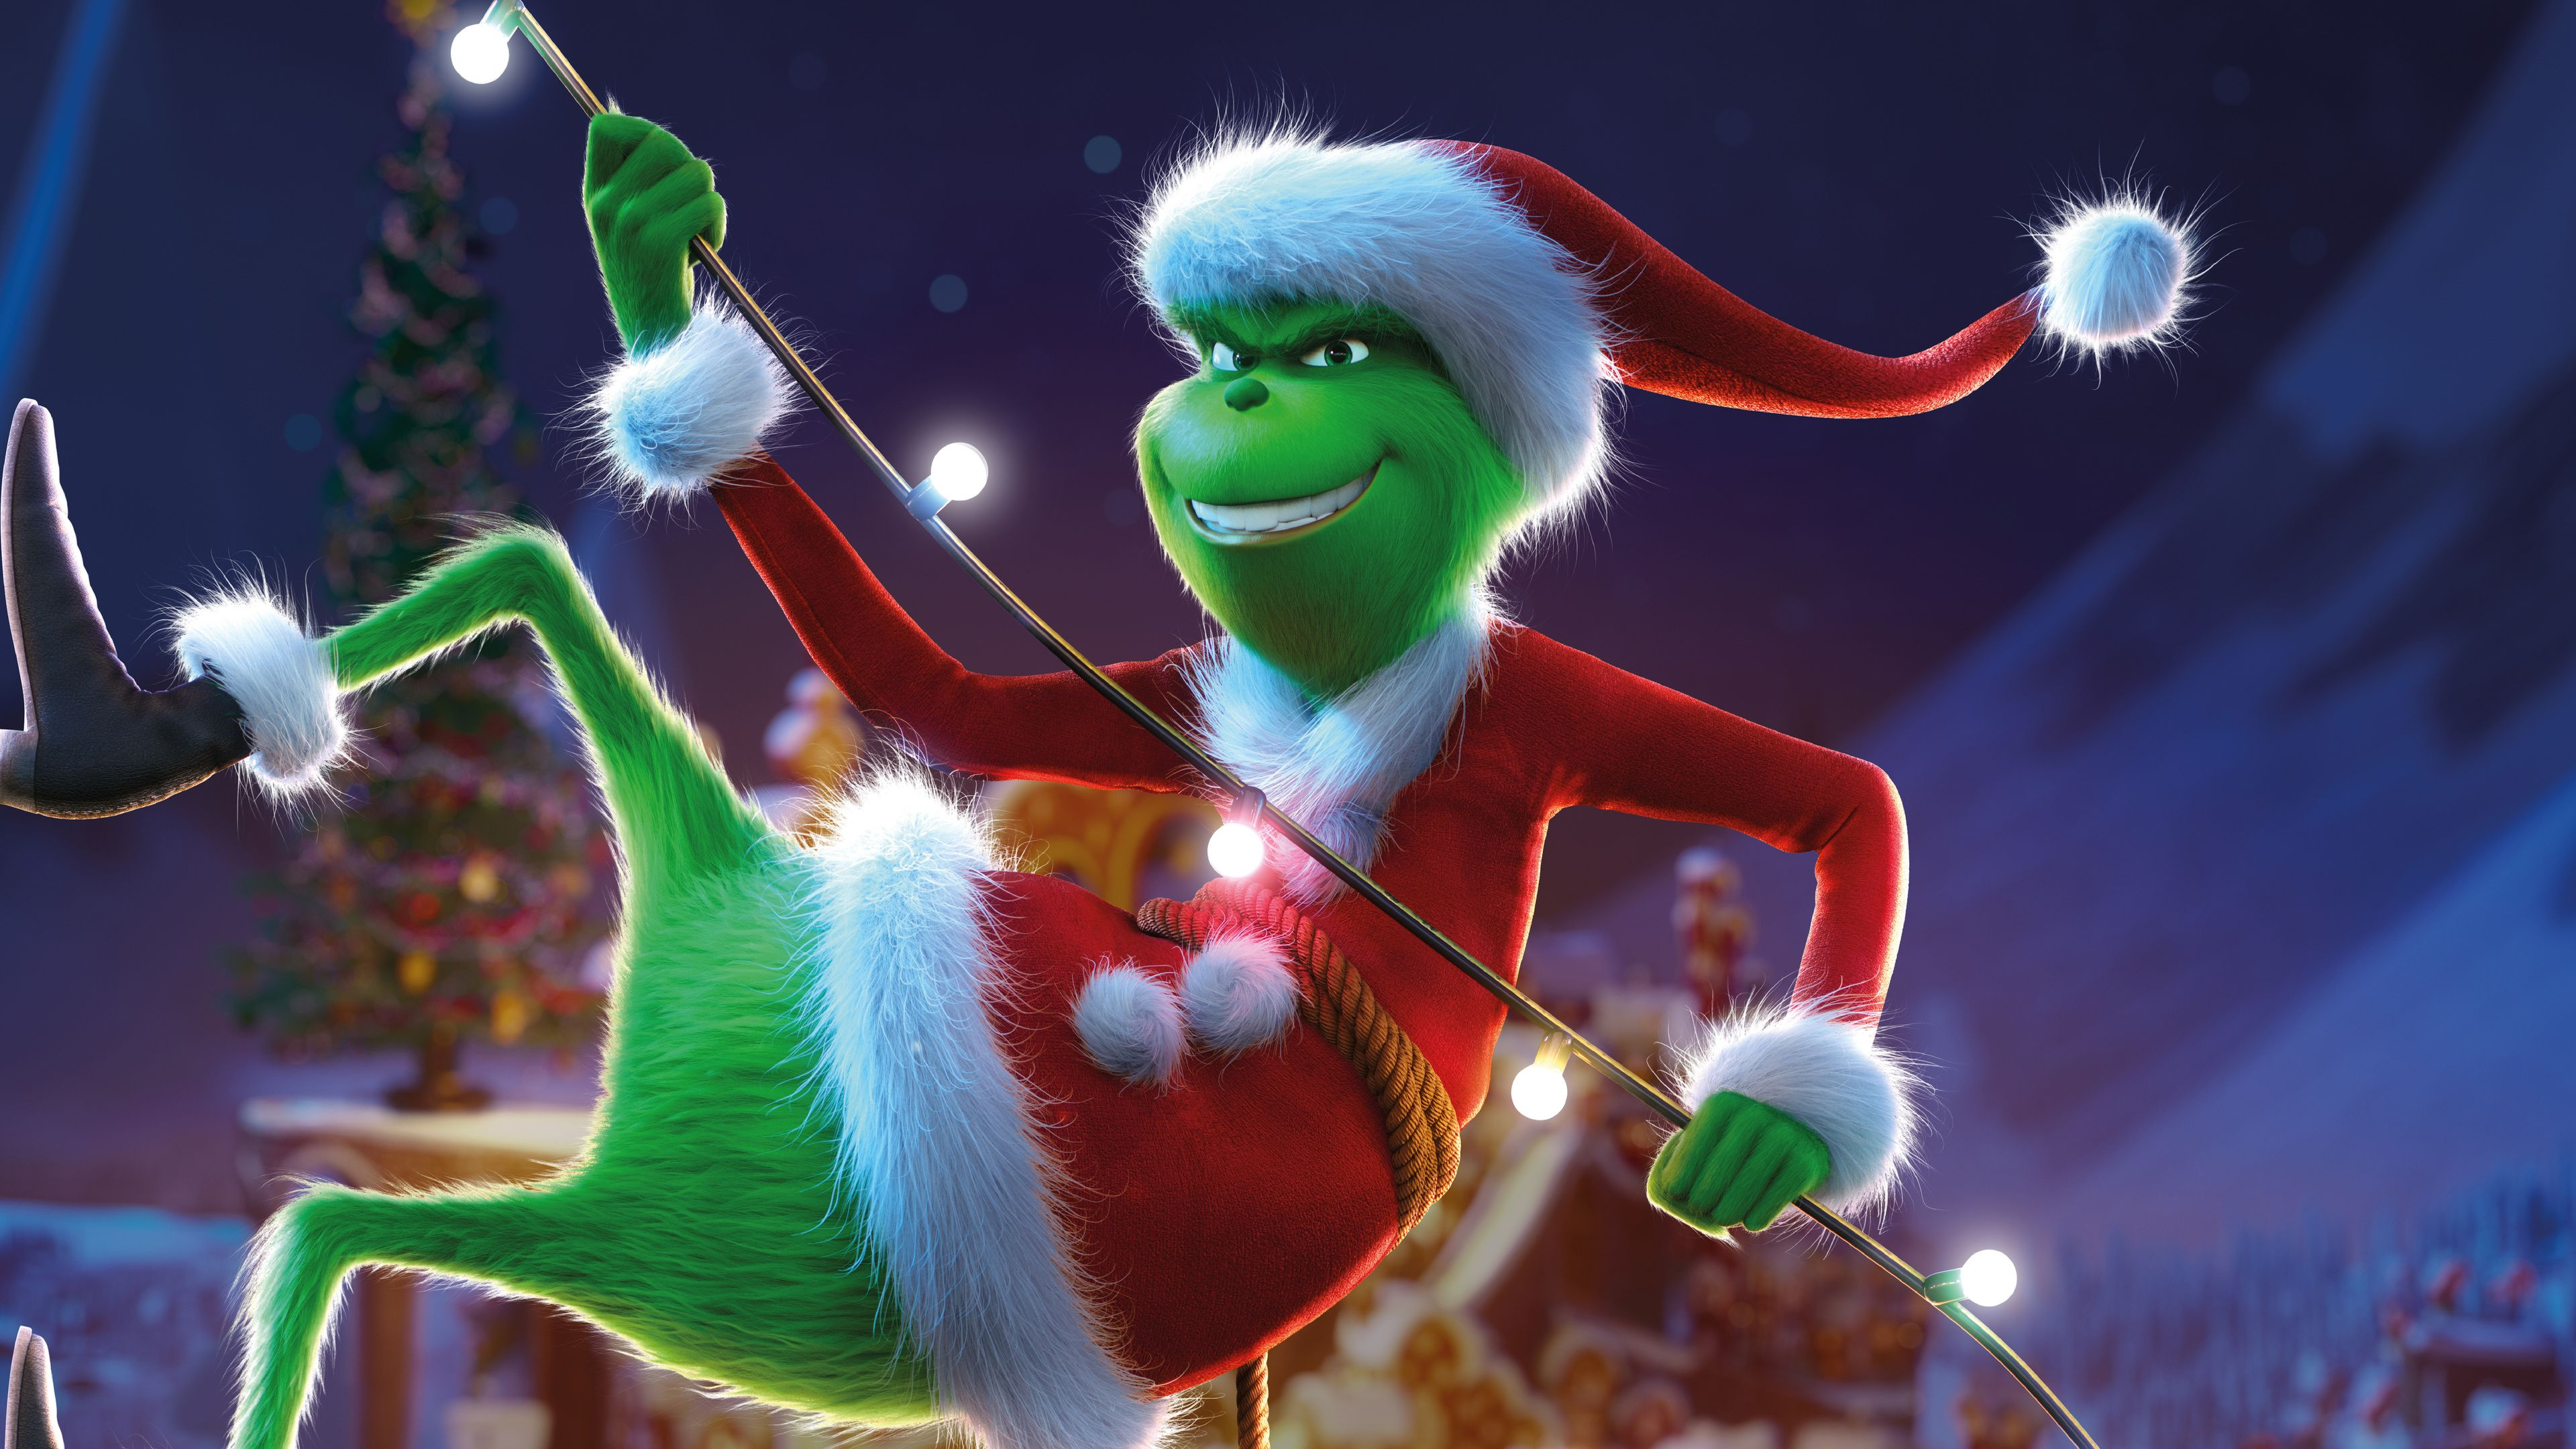 Wallpaper 4k The Grinch 8k 2018 Movies Wallpapers 4k Wallpapers 5k Wallpapers 8k Wallpapers Animated Movies Wallpapers Hd Wallpapers Movies Wallpapers Th Walle Moldes